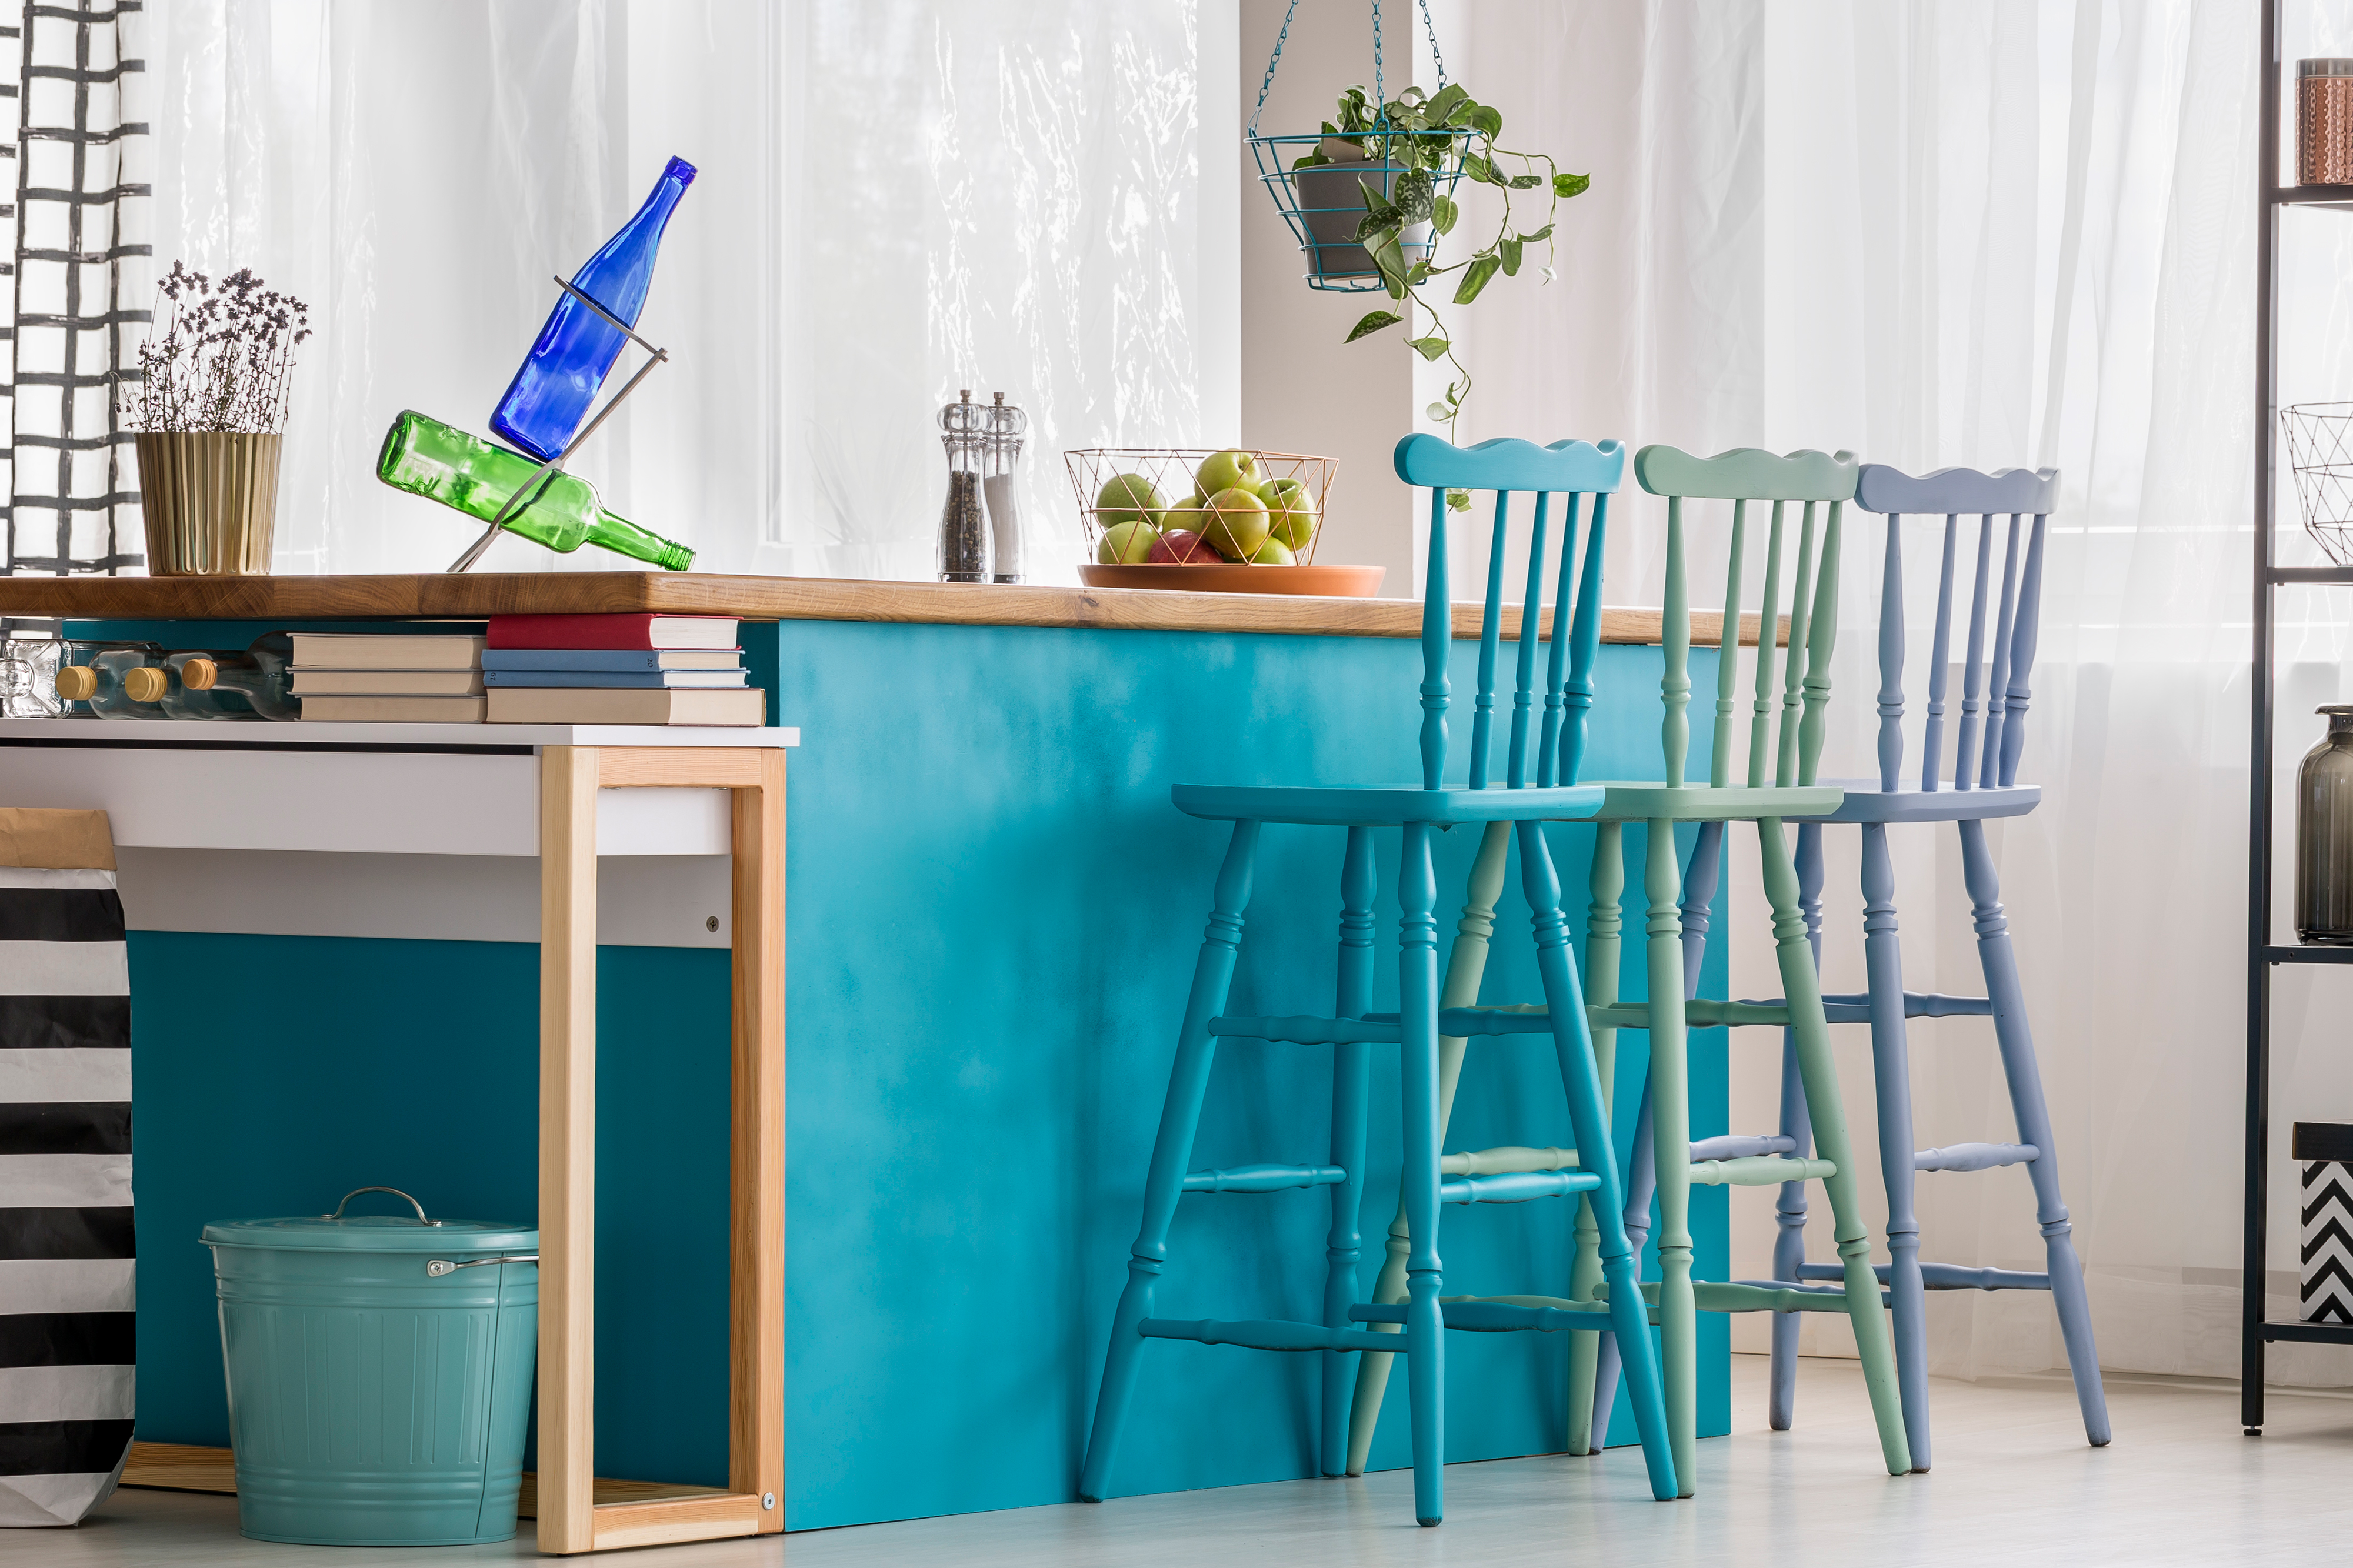 Blue, green and purple spray painted wood chairs in kitchen.